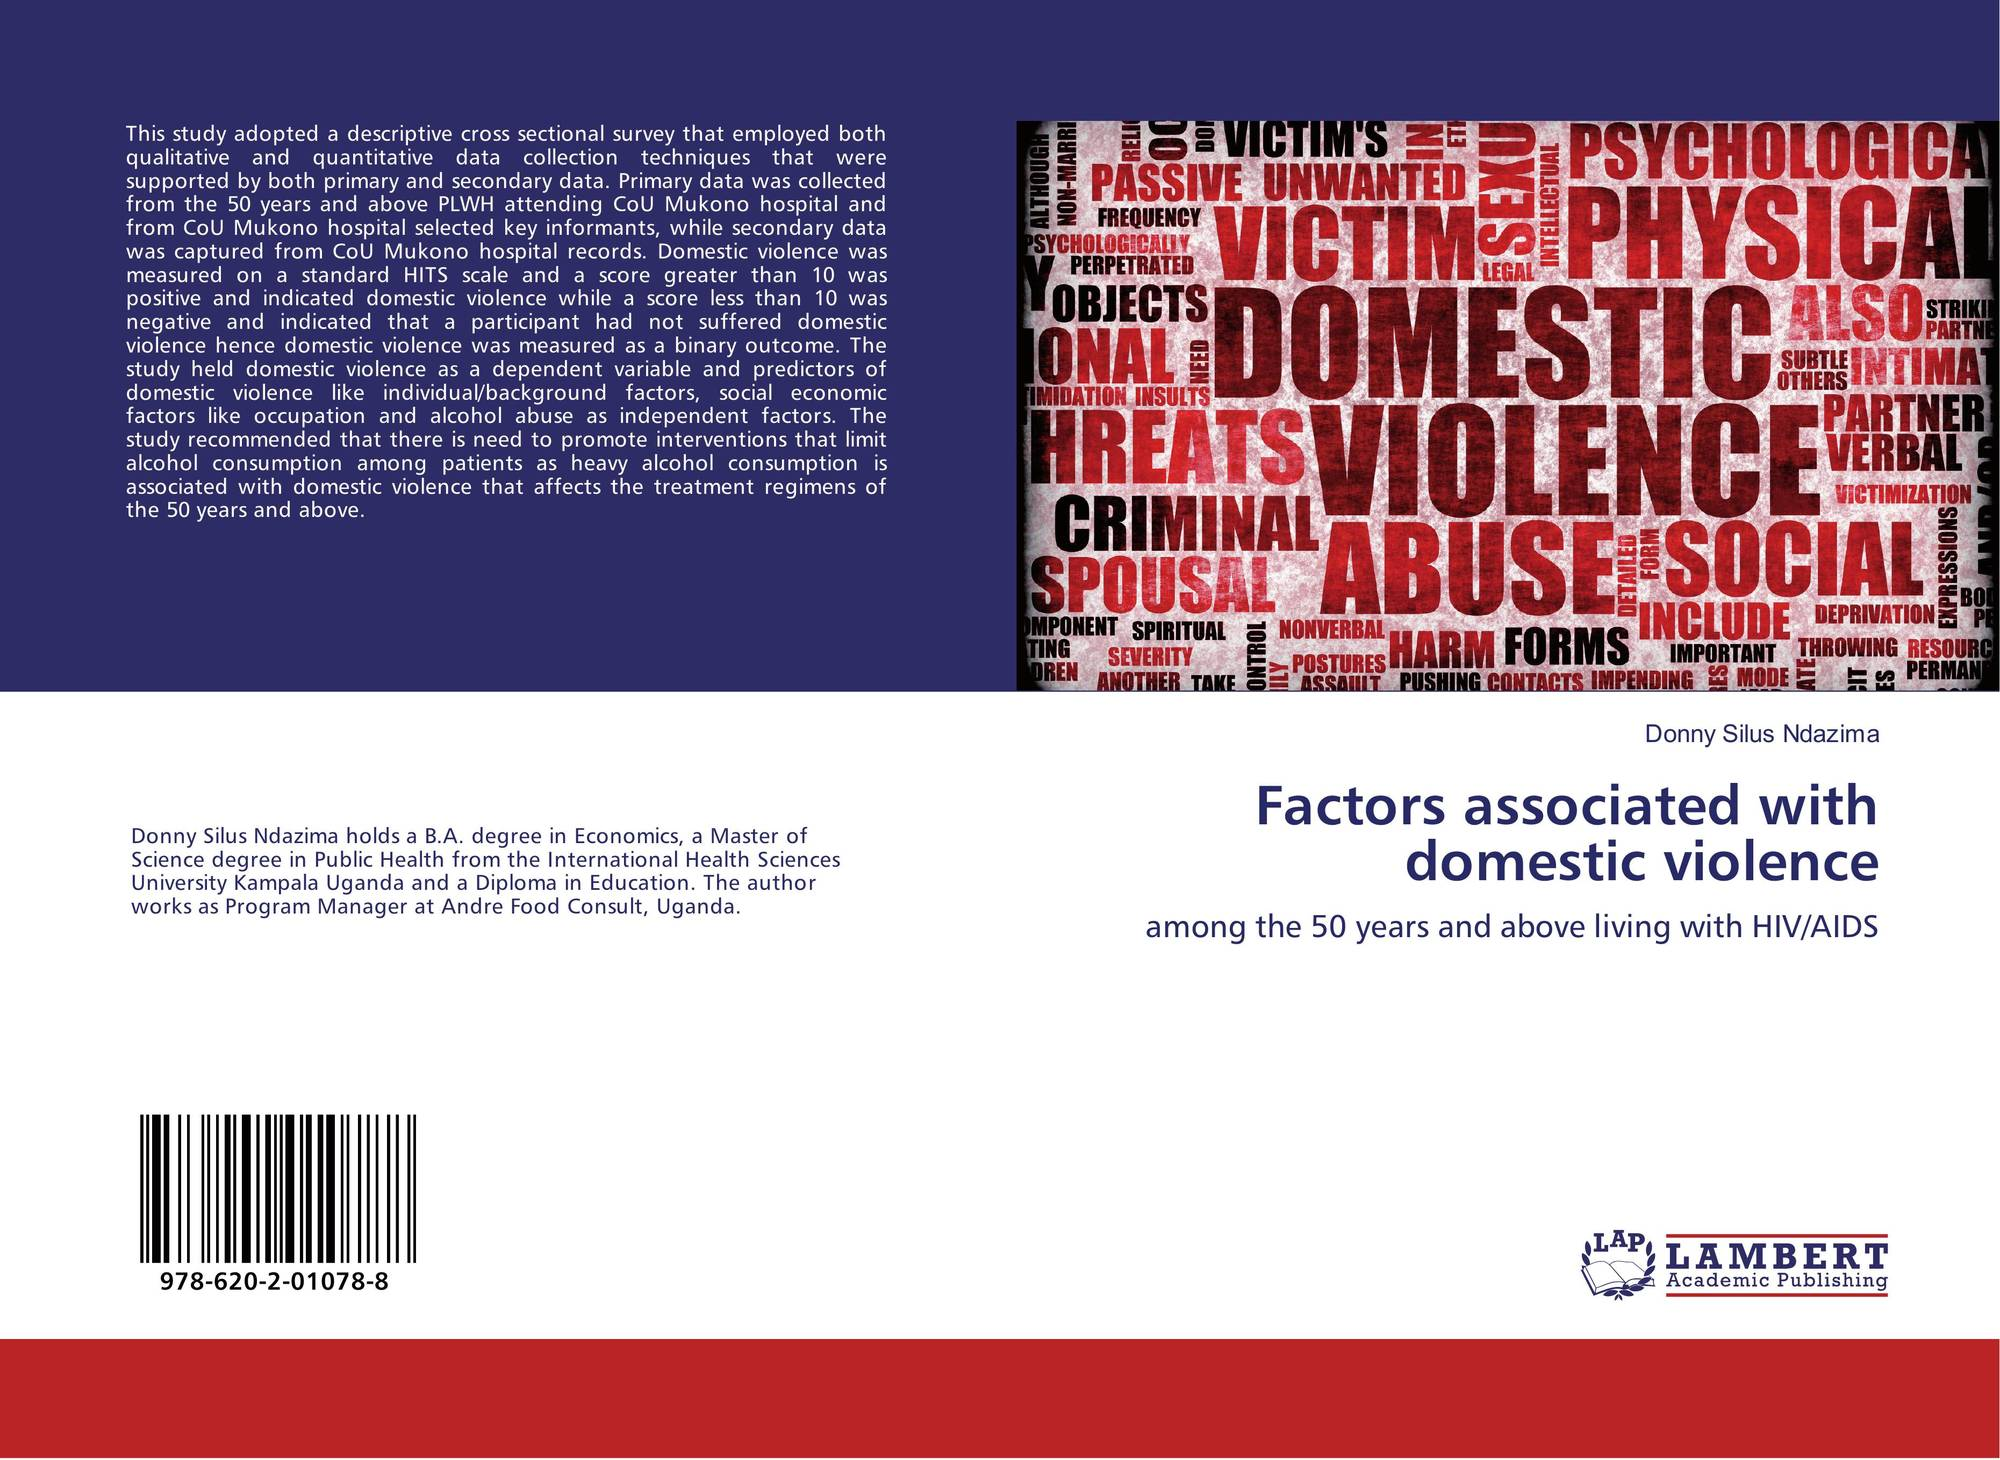 an analysis of the reduction or elimination of domestic violence Best practice in the reduction and elimination of seclusion and restraint seclusion: time for change 1 1 purpose and method the purpose of this paper is to identify, through a review of literature, best practices in the.